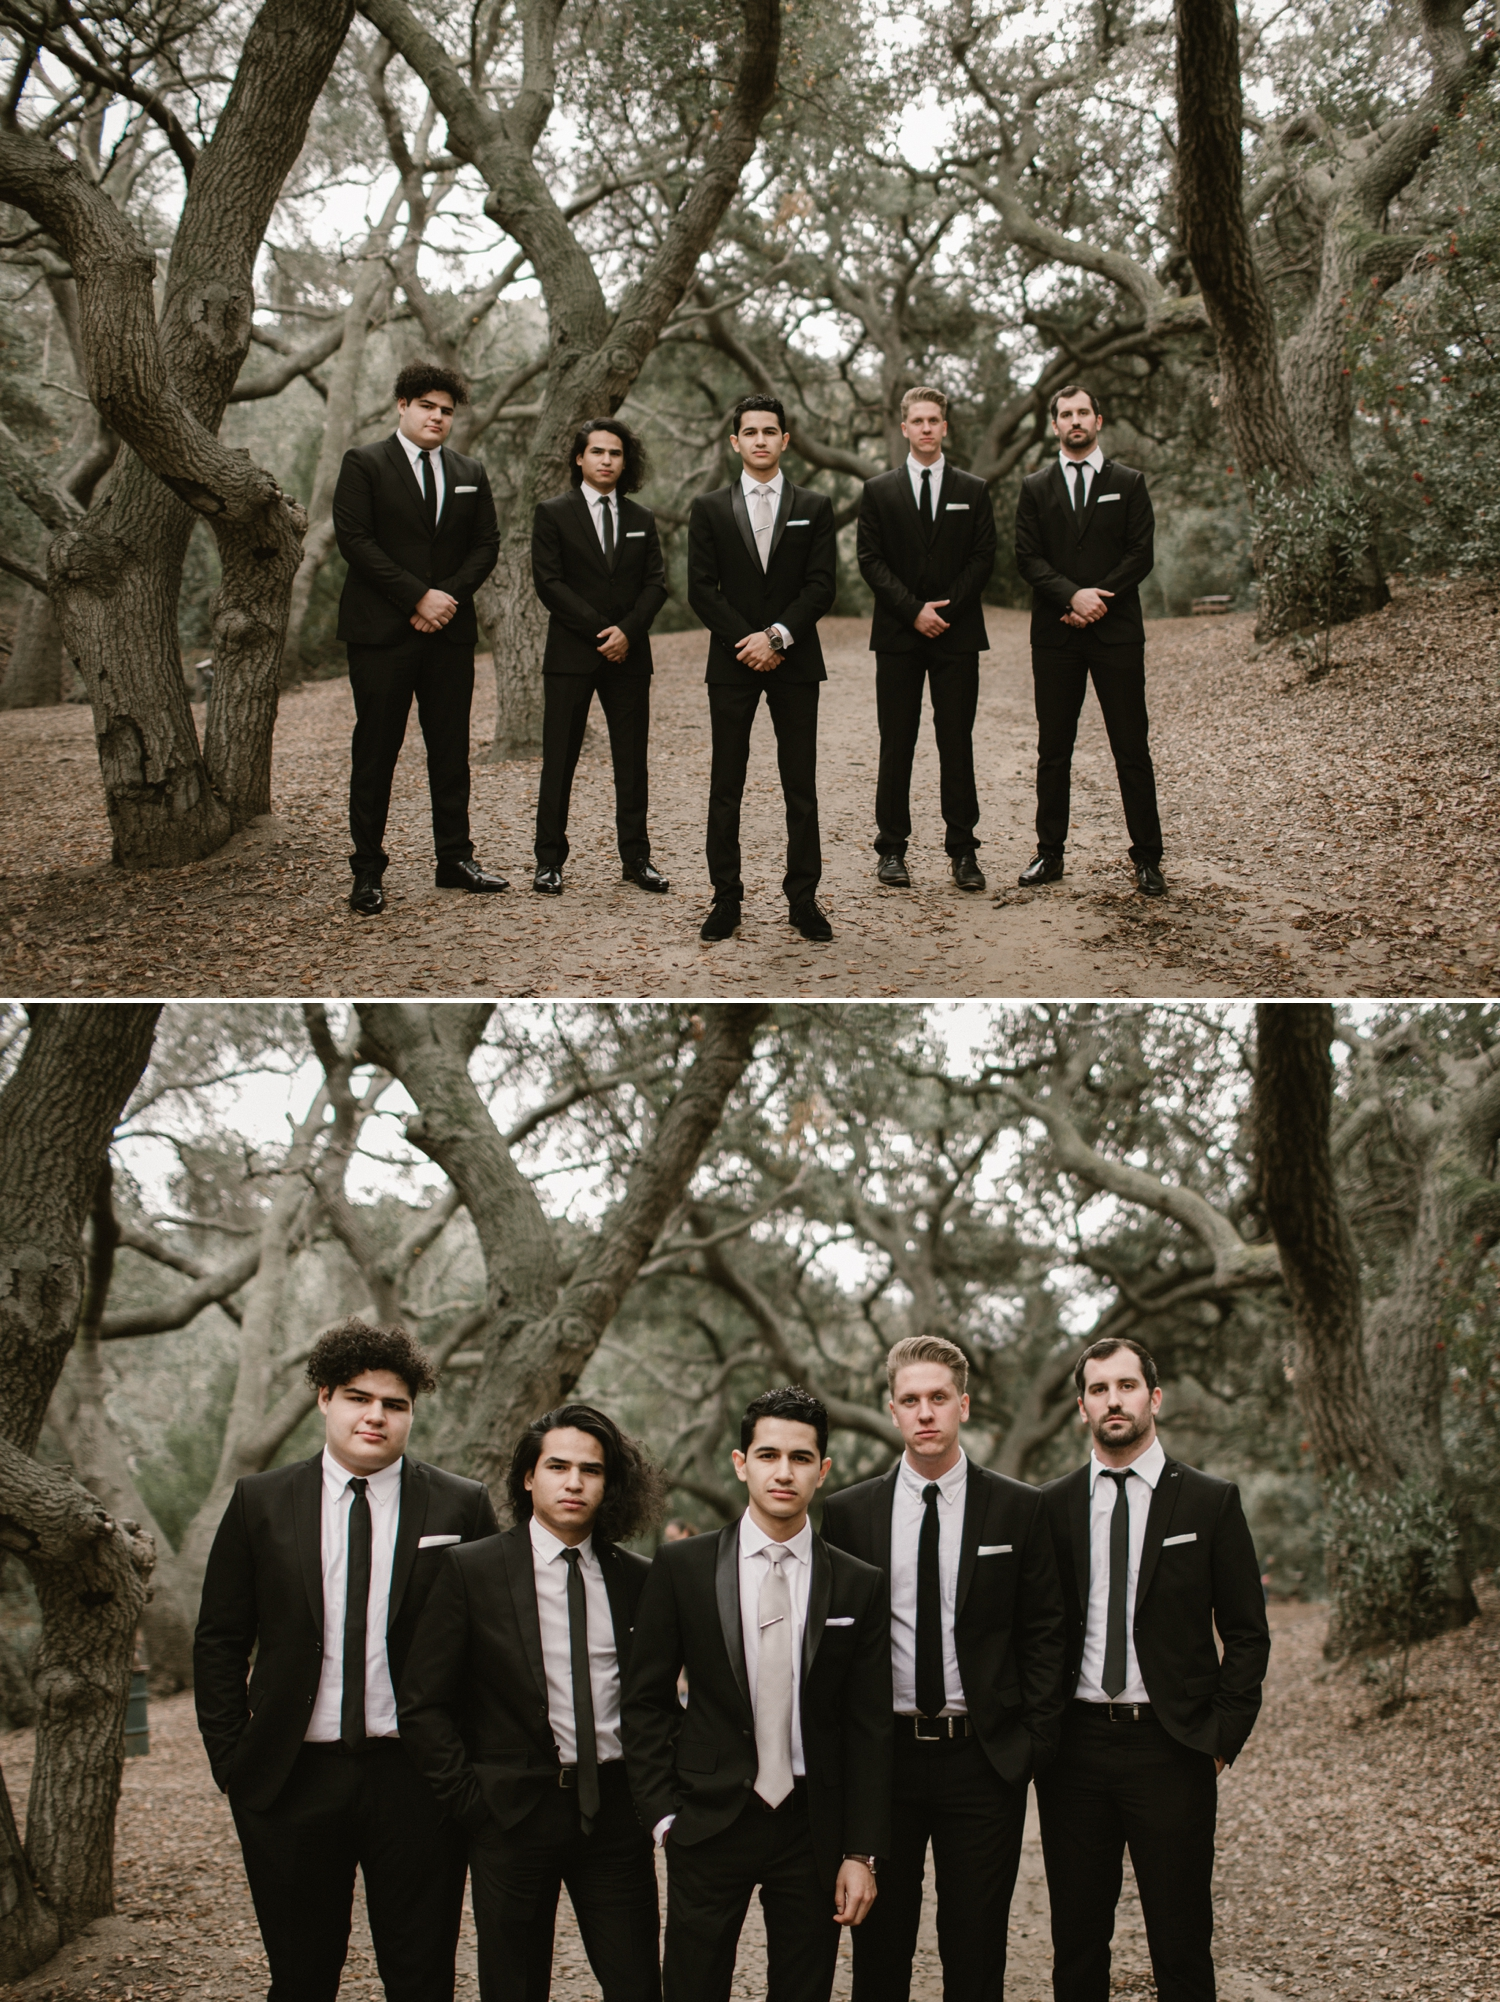 Groomsmen formals at Oak Canyon Nature Center by Paige Nelson